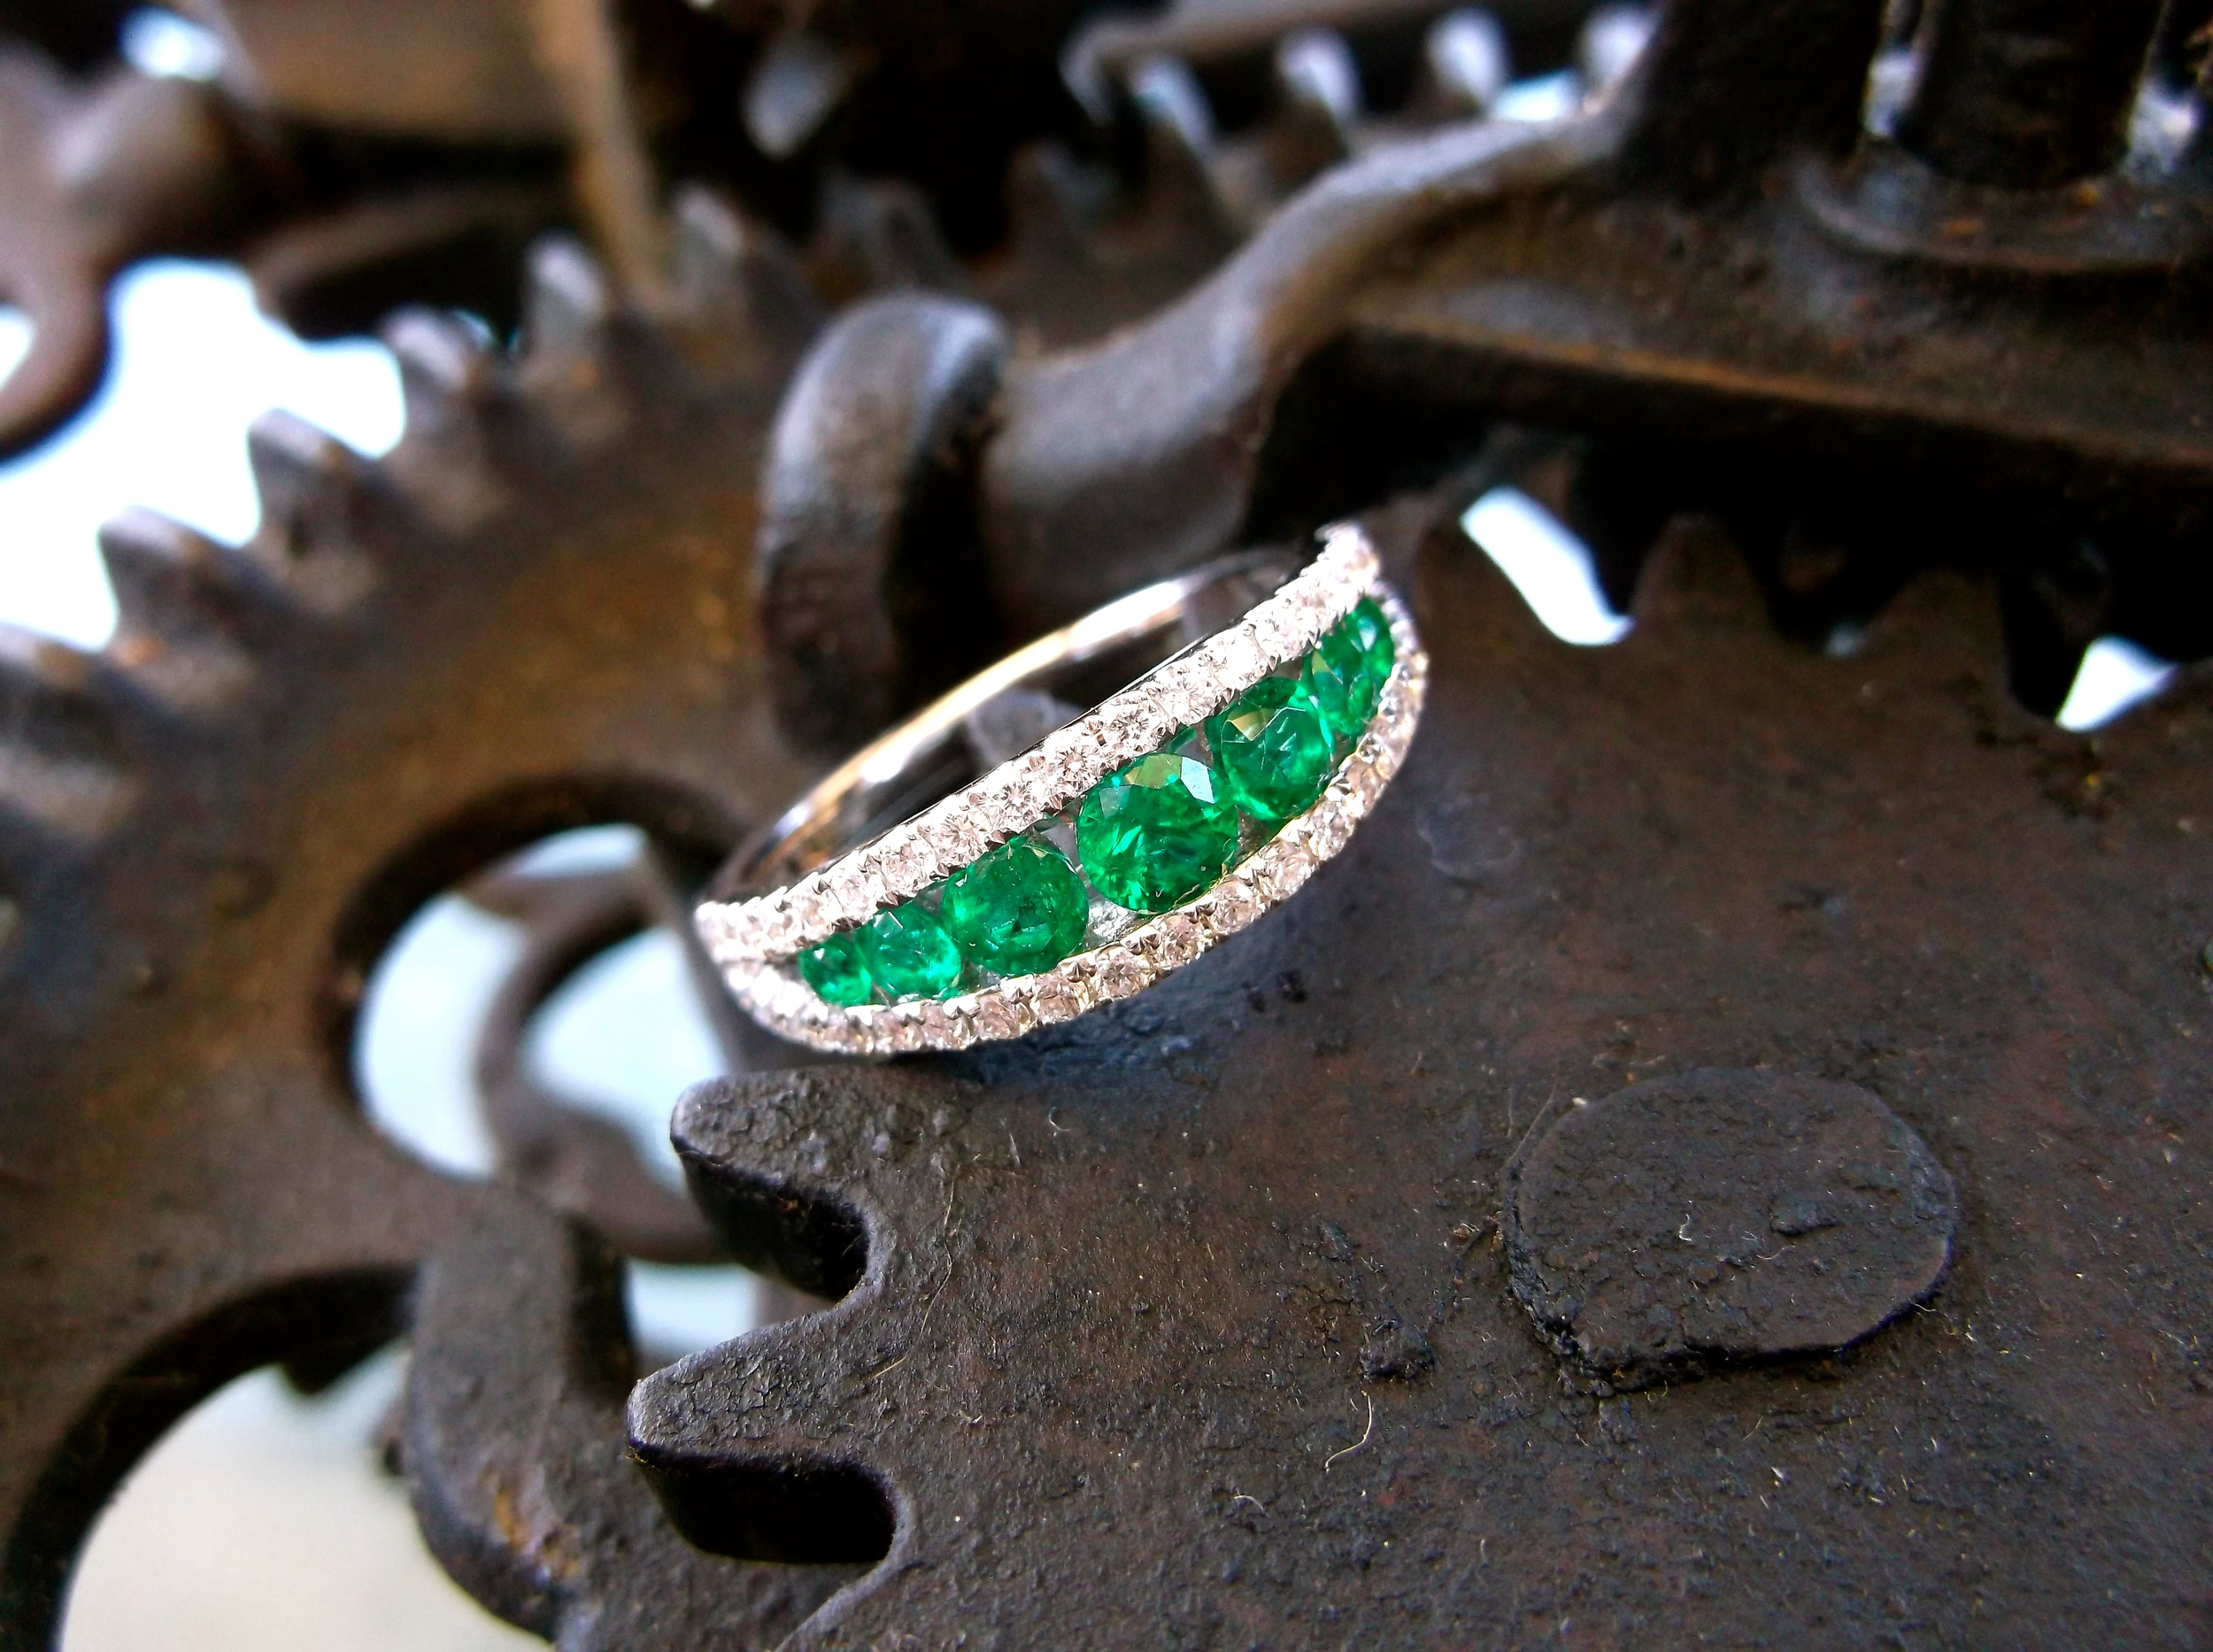 SOLD - Stunning emerald and diamond band set in white gold with 0.61 carats total weight in emeralds and 0.42 carats total weight in diamonds.